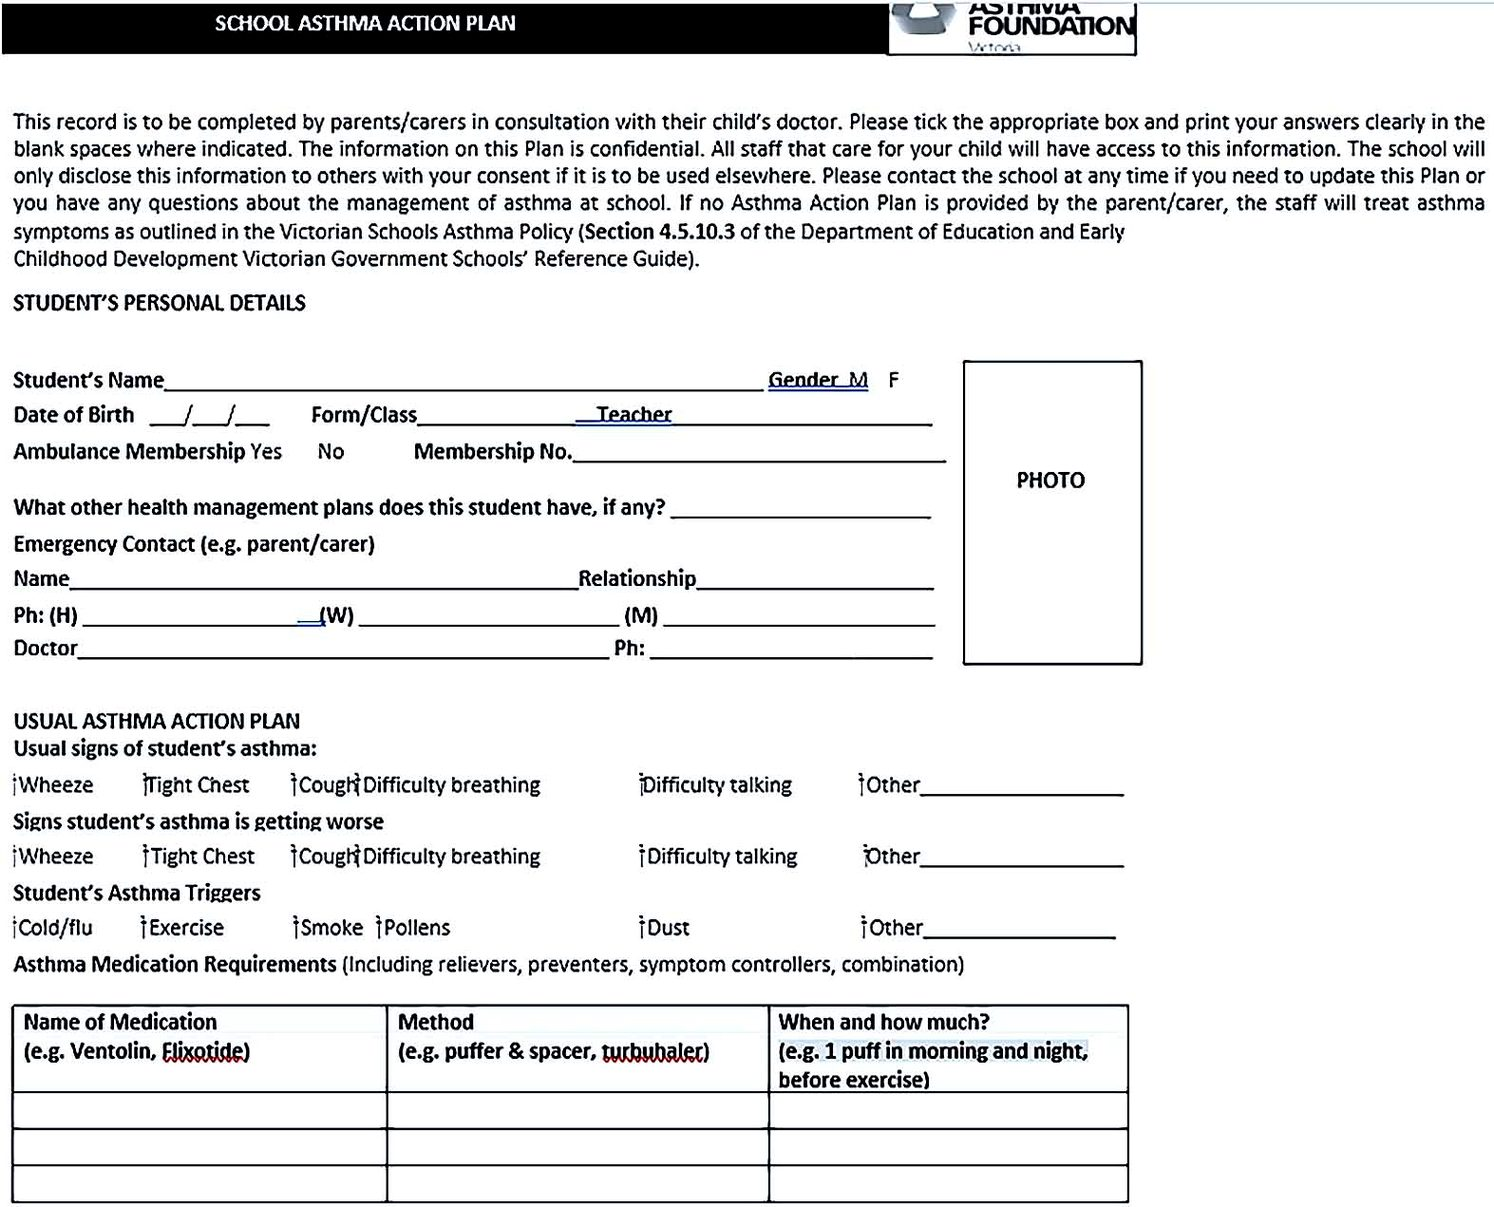 School Asthma Action Plan Template